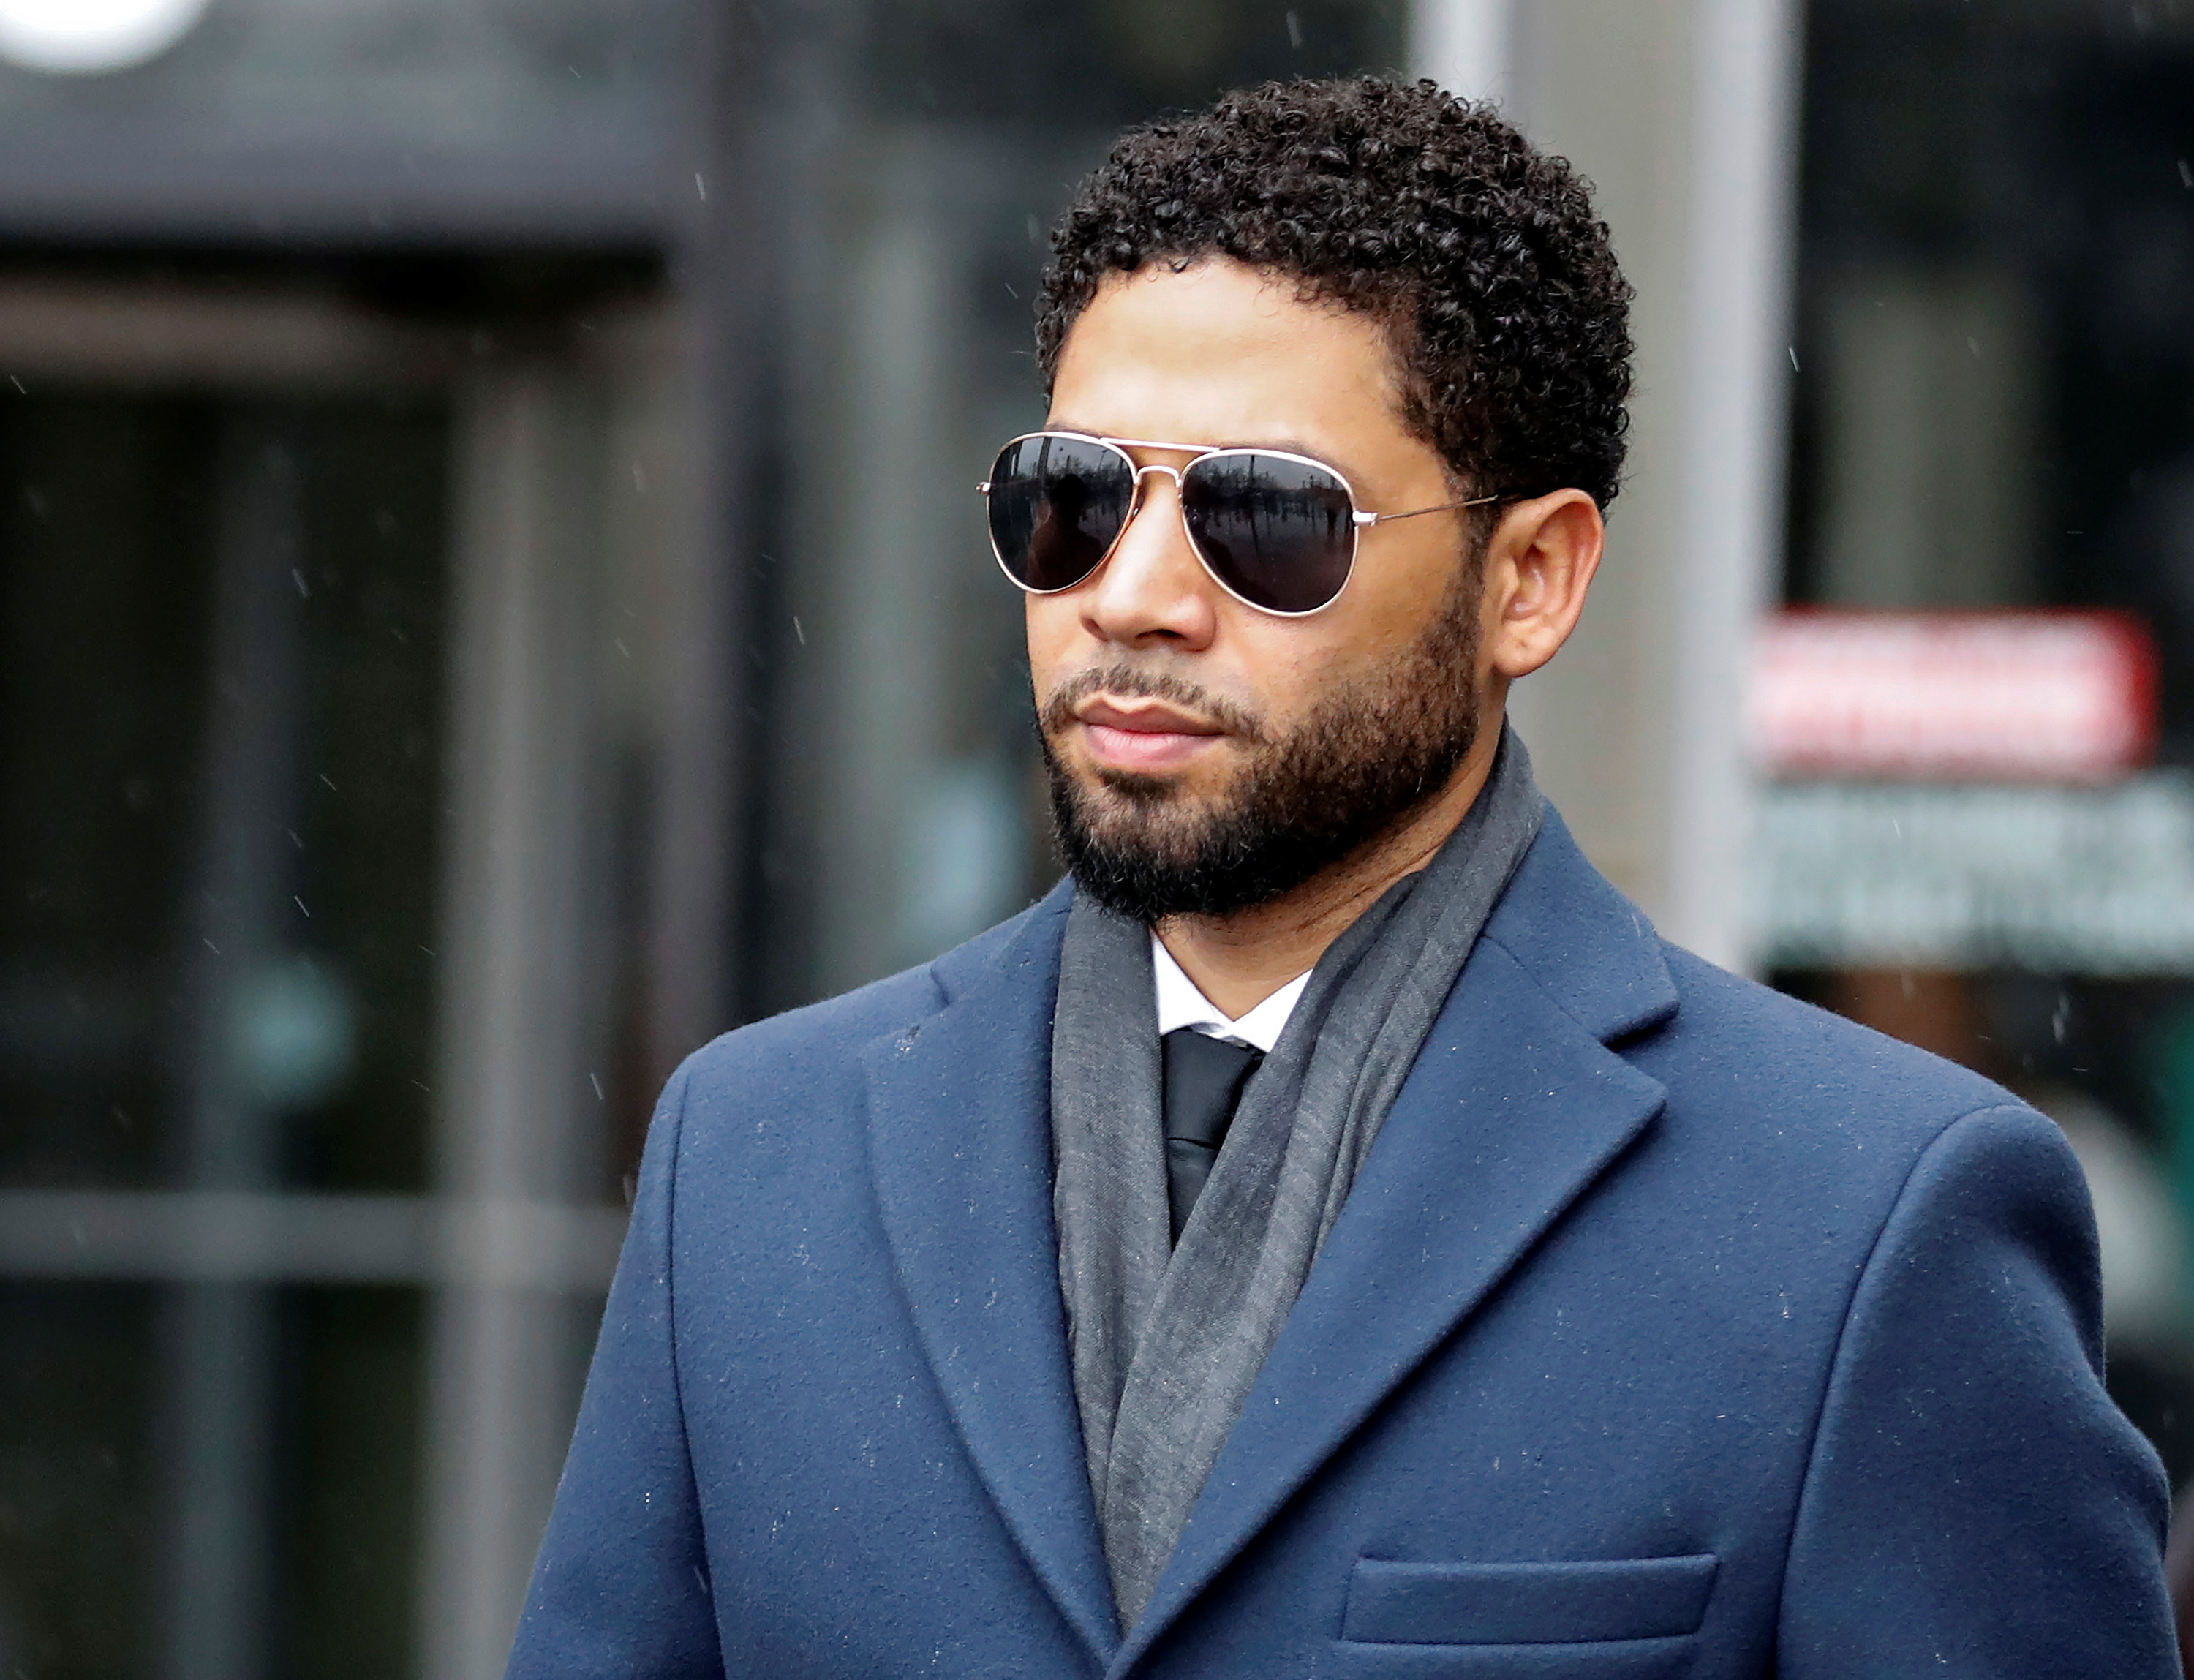 Actor Jussie Smollett leaves the Leighton Criminal Court Building after his hearing in Chicago, Illinois, U.S. March 14, 2019. REUTERS/Kamil Krzaczynski